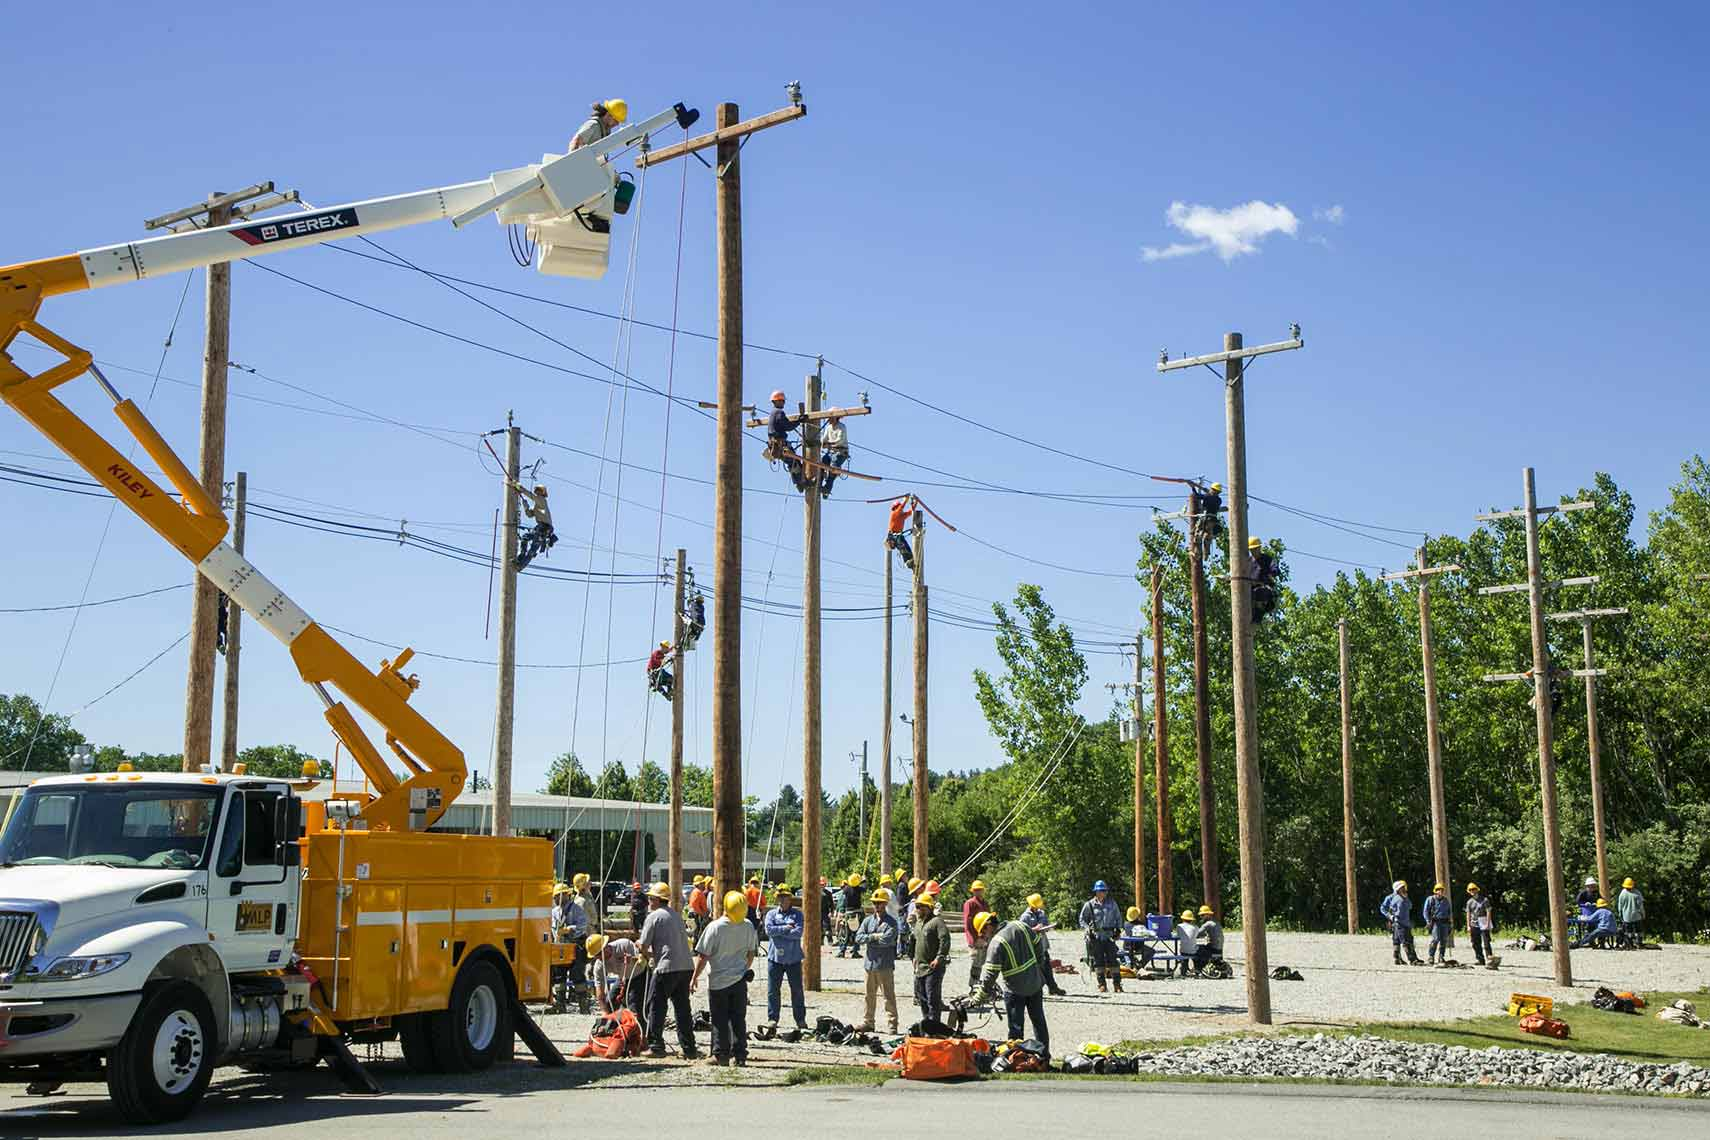 Northeast Public Power Association Linemen with Cherry Picker